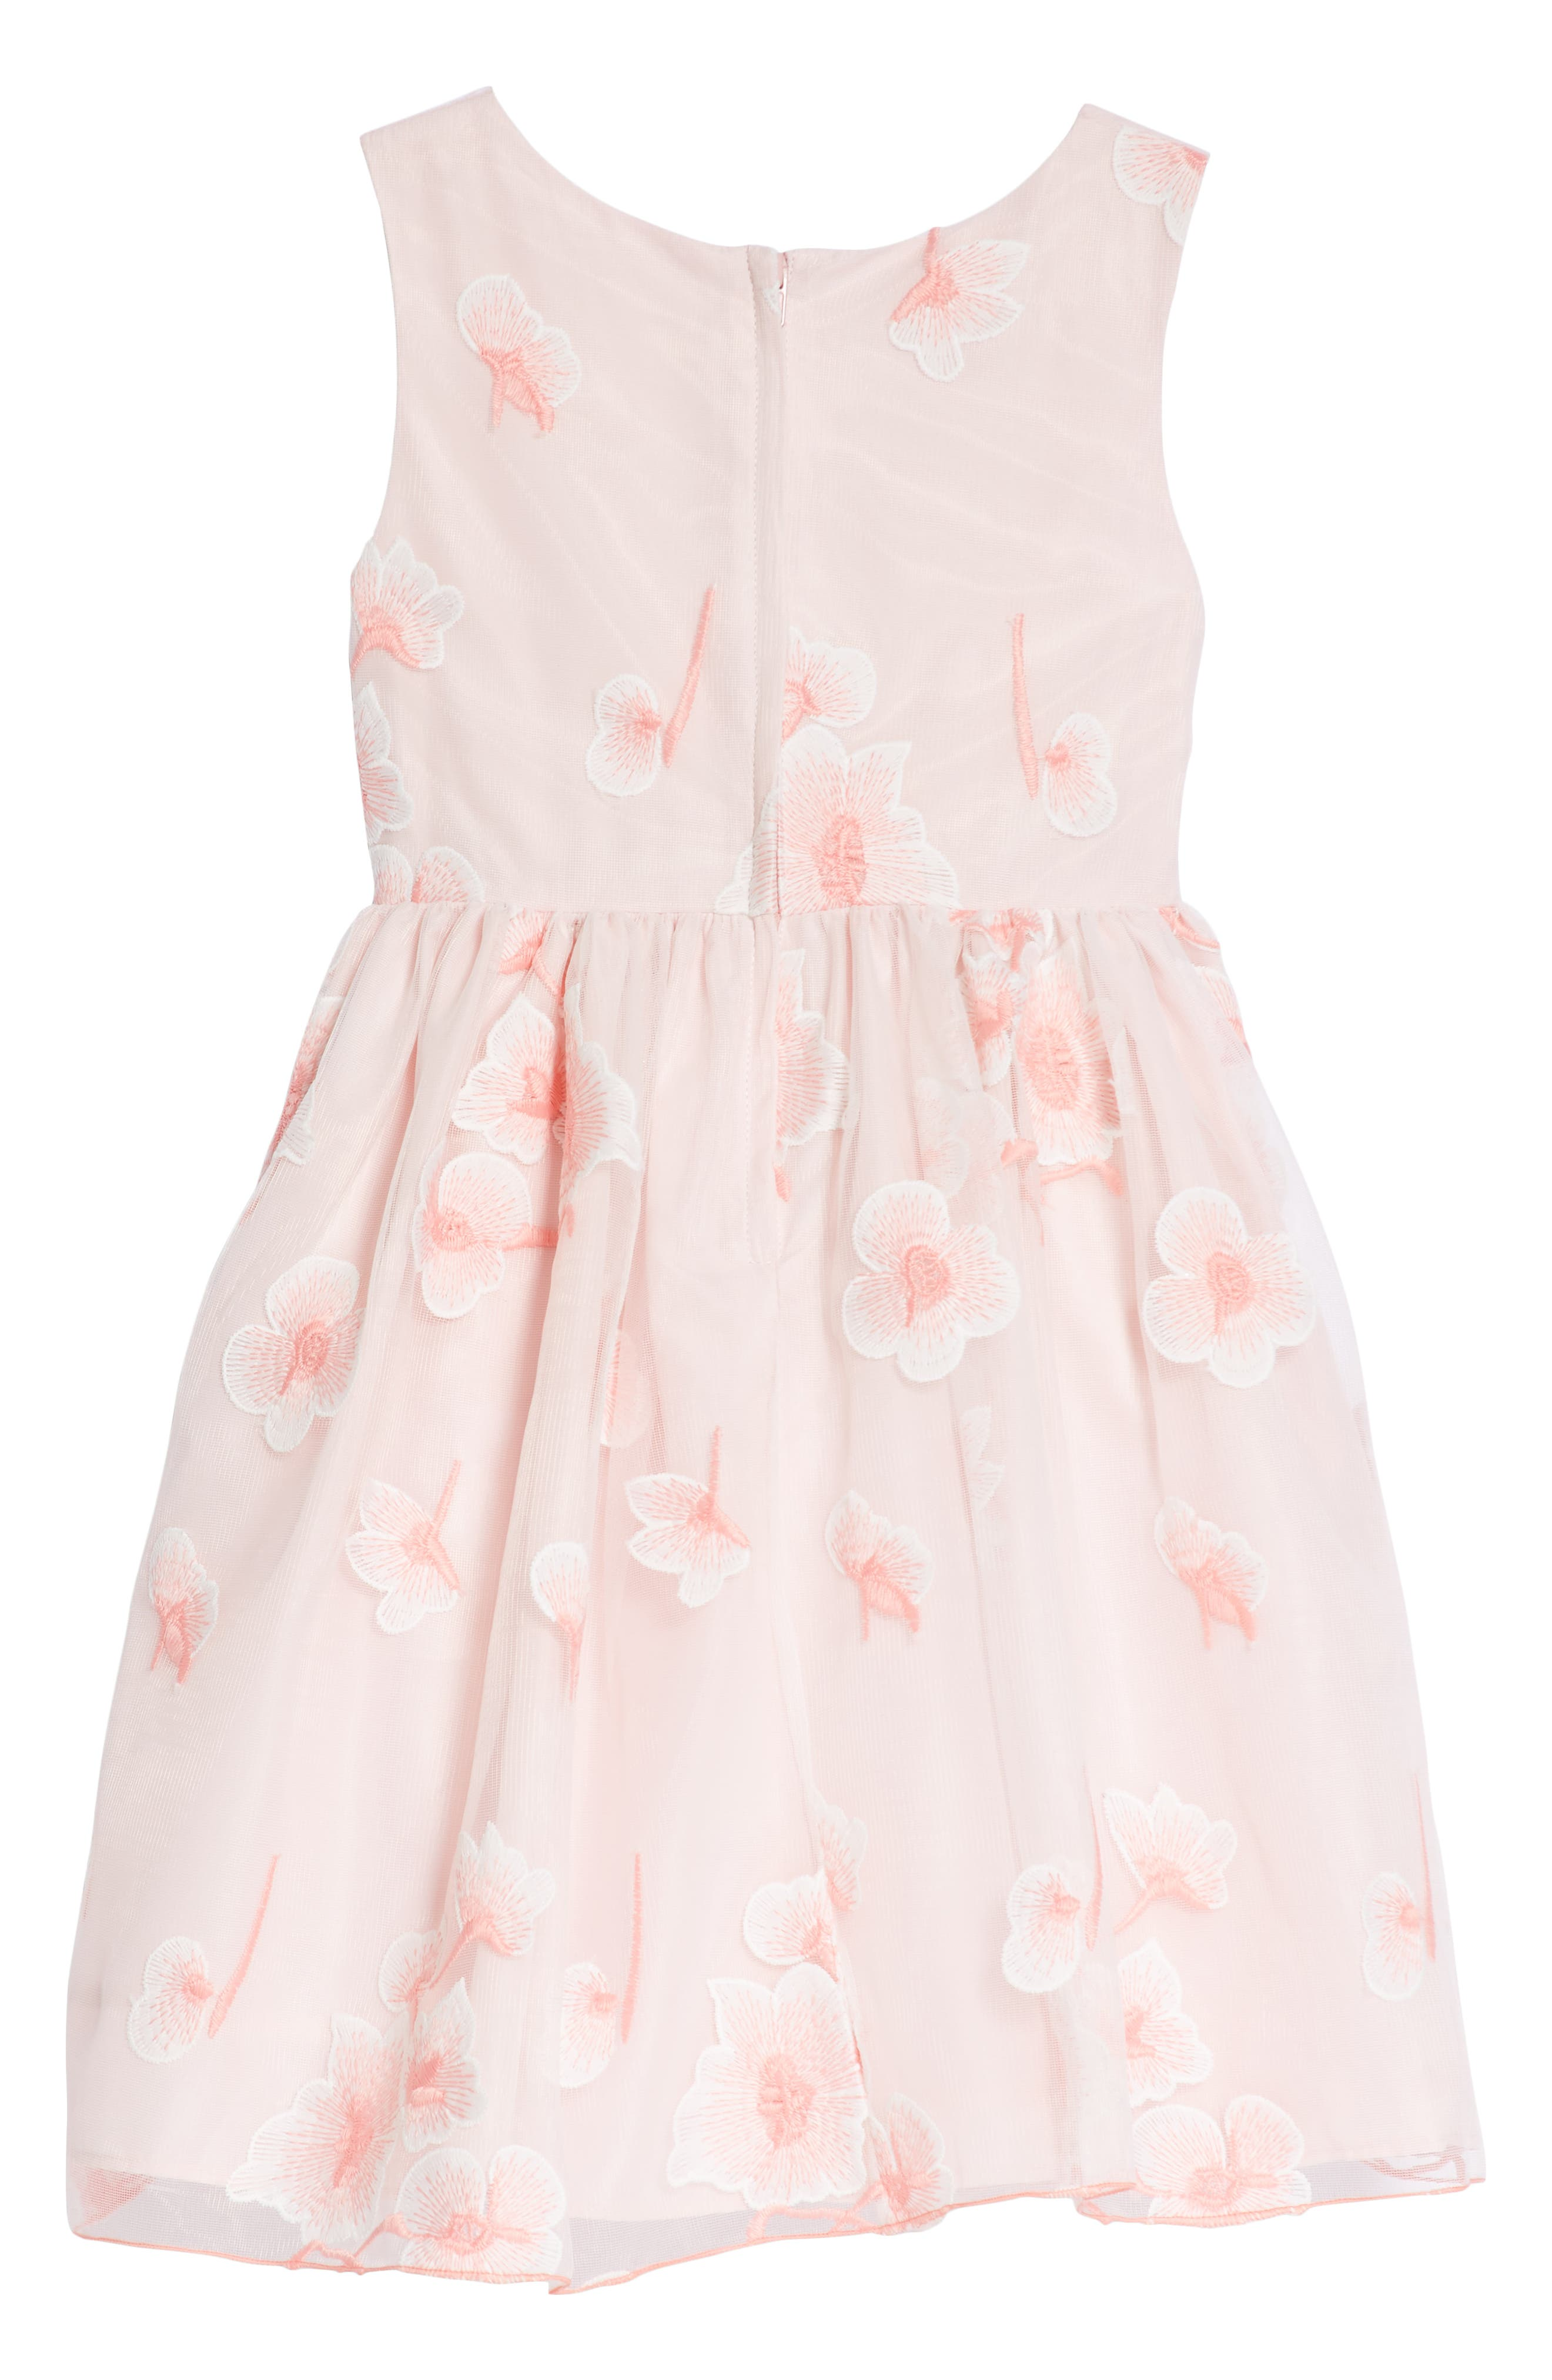 Floral Embroidered Dress,                             Alternate thumbnail 2, color,                             690